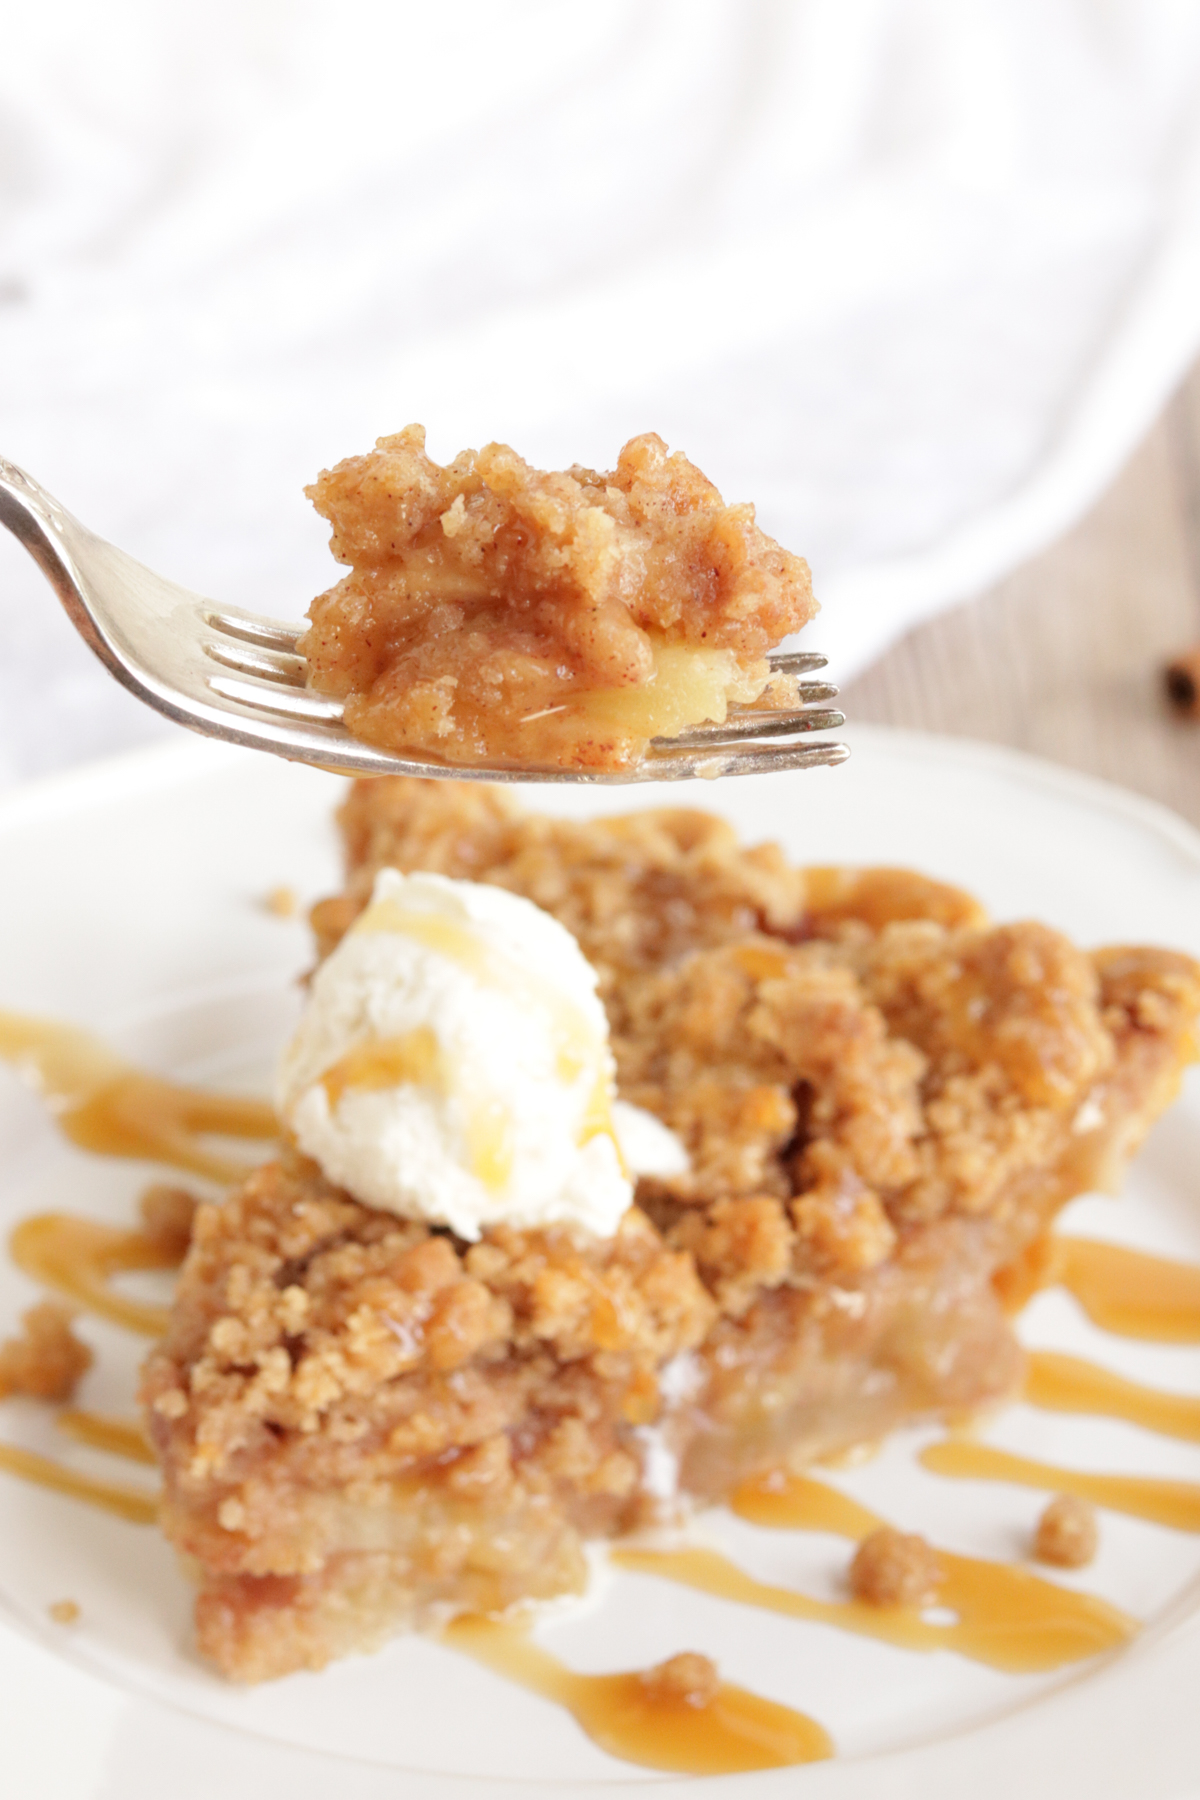 A fork with a bite of apple pie over a slice of pie.